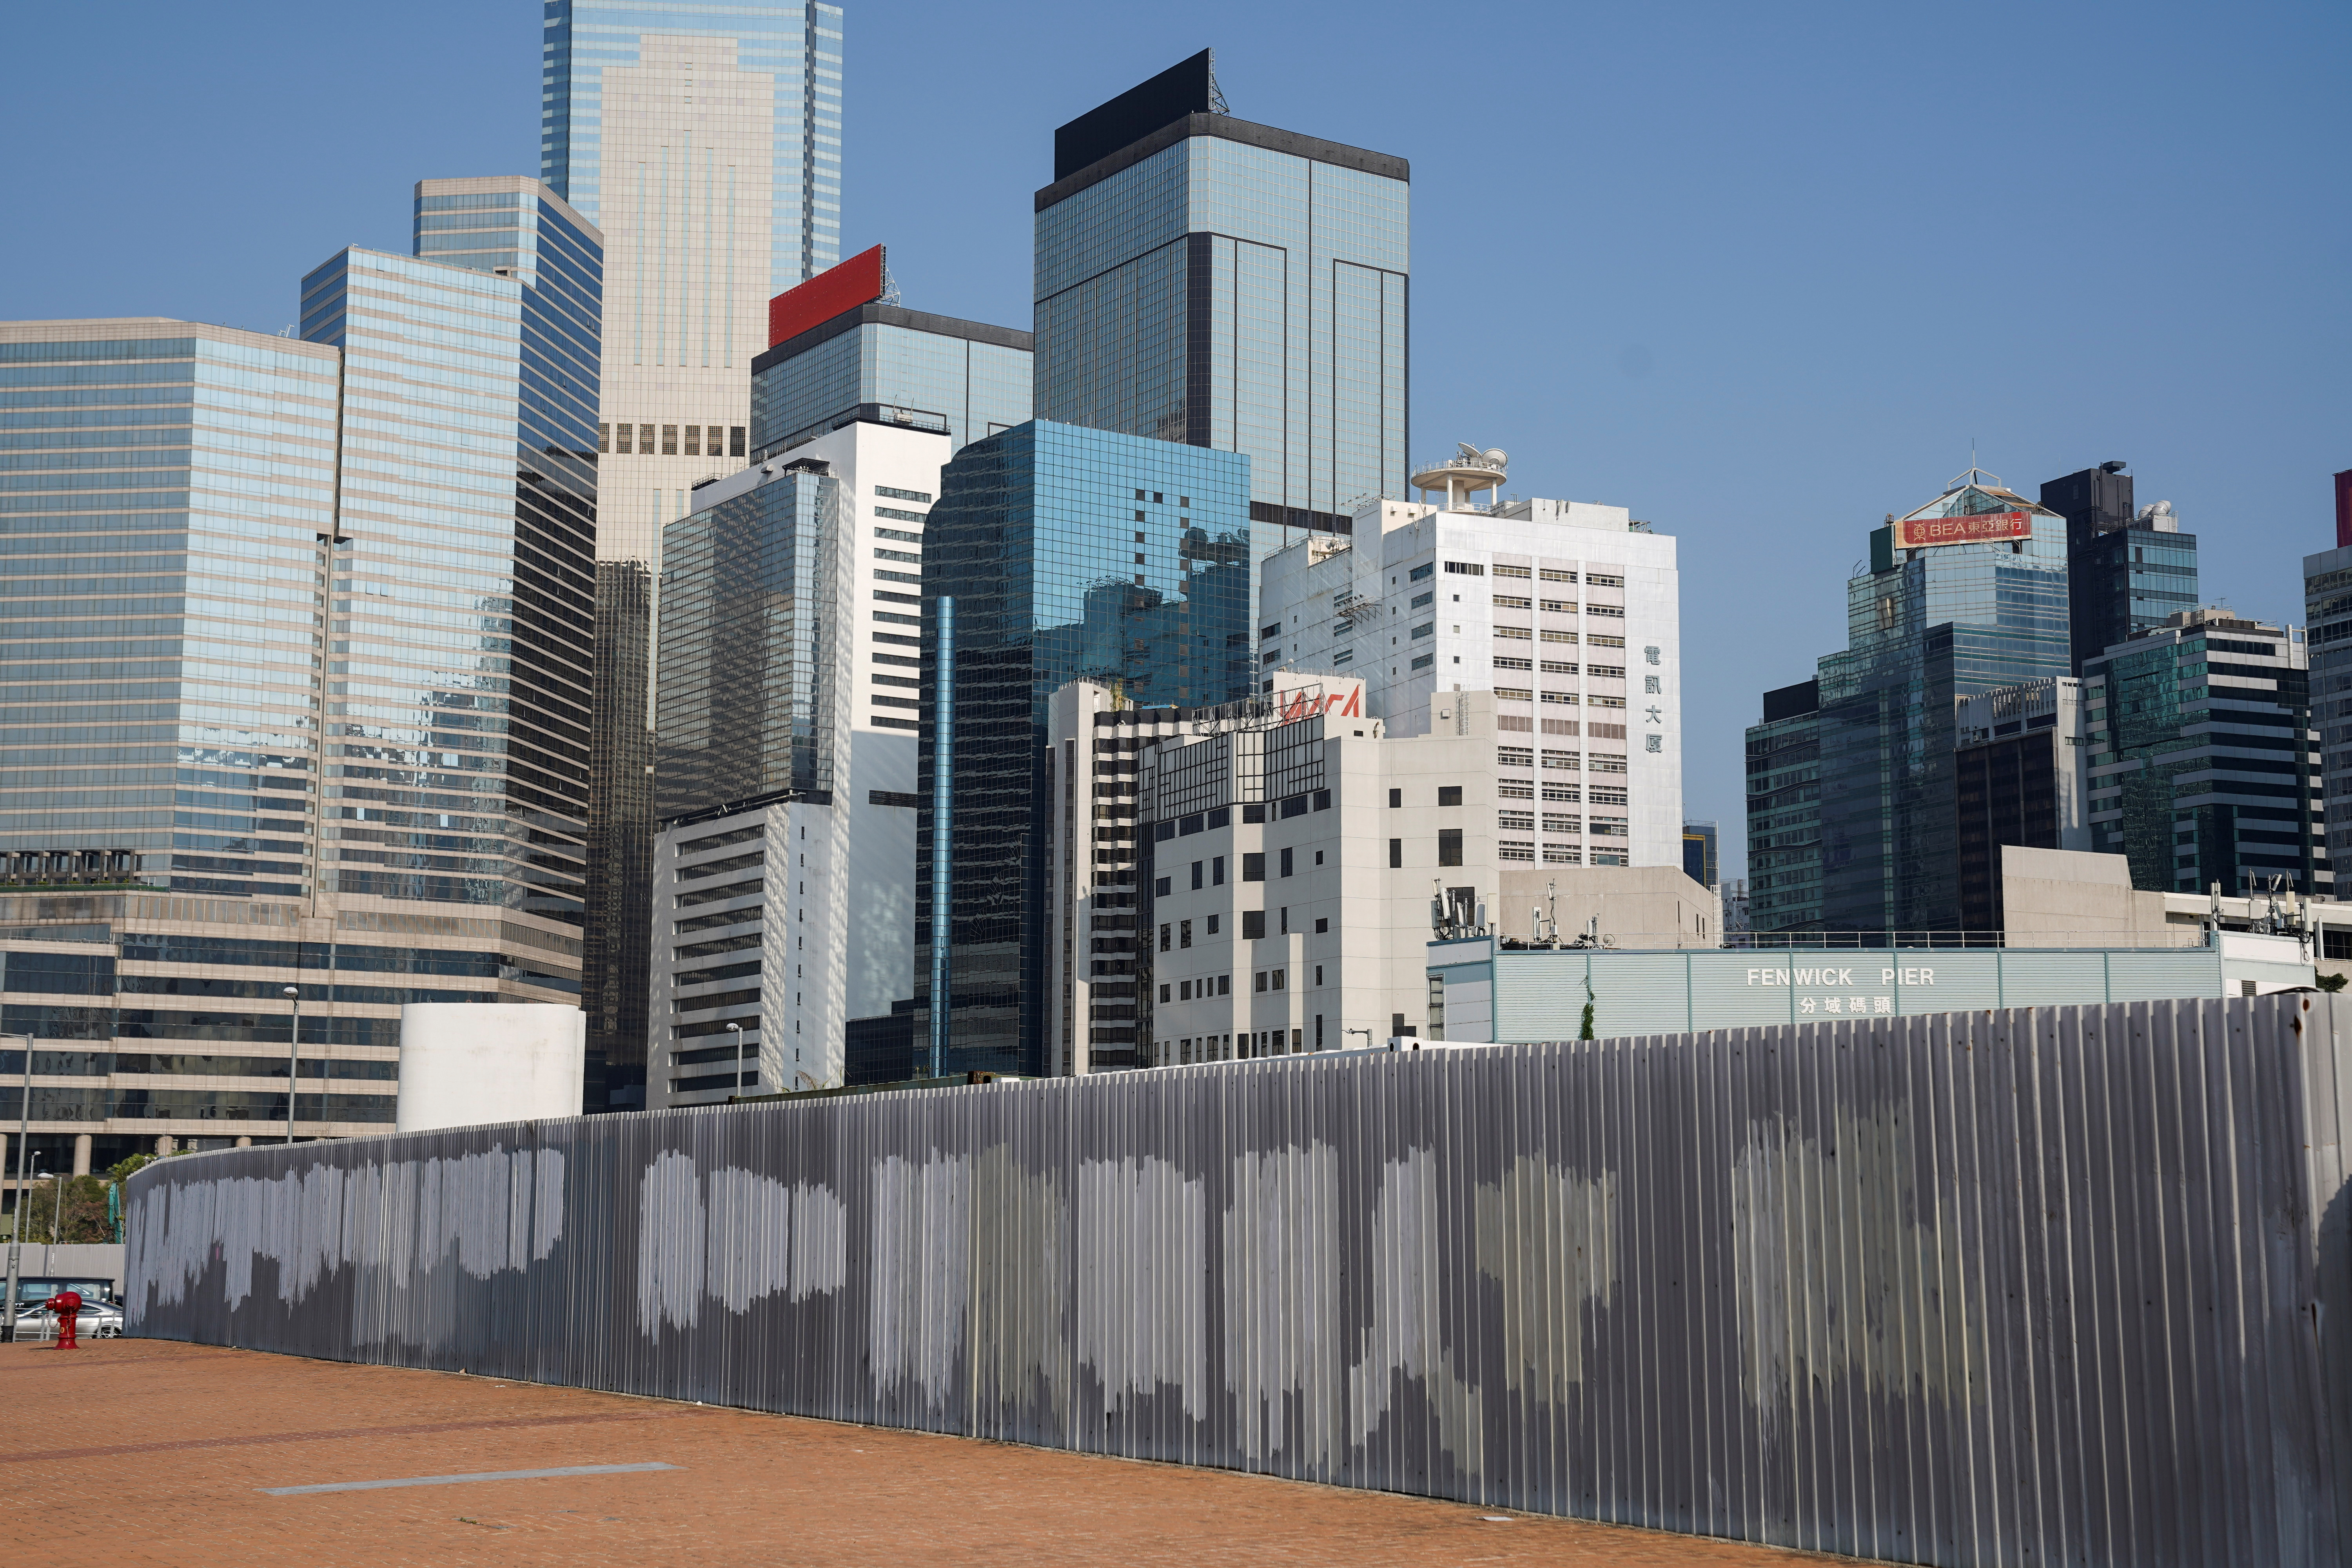 Graffiti has been removed off a fence in Hong Kong's financial district, the site of many 2019 protests, Hong Kong, China, April 23, 2021. REUTERS/Lam Yik